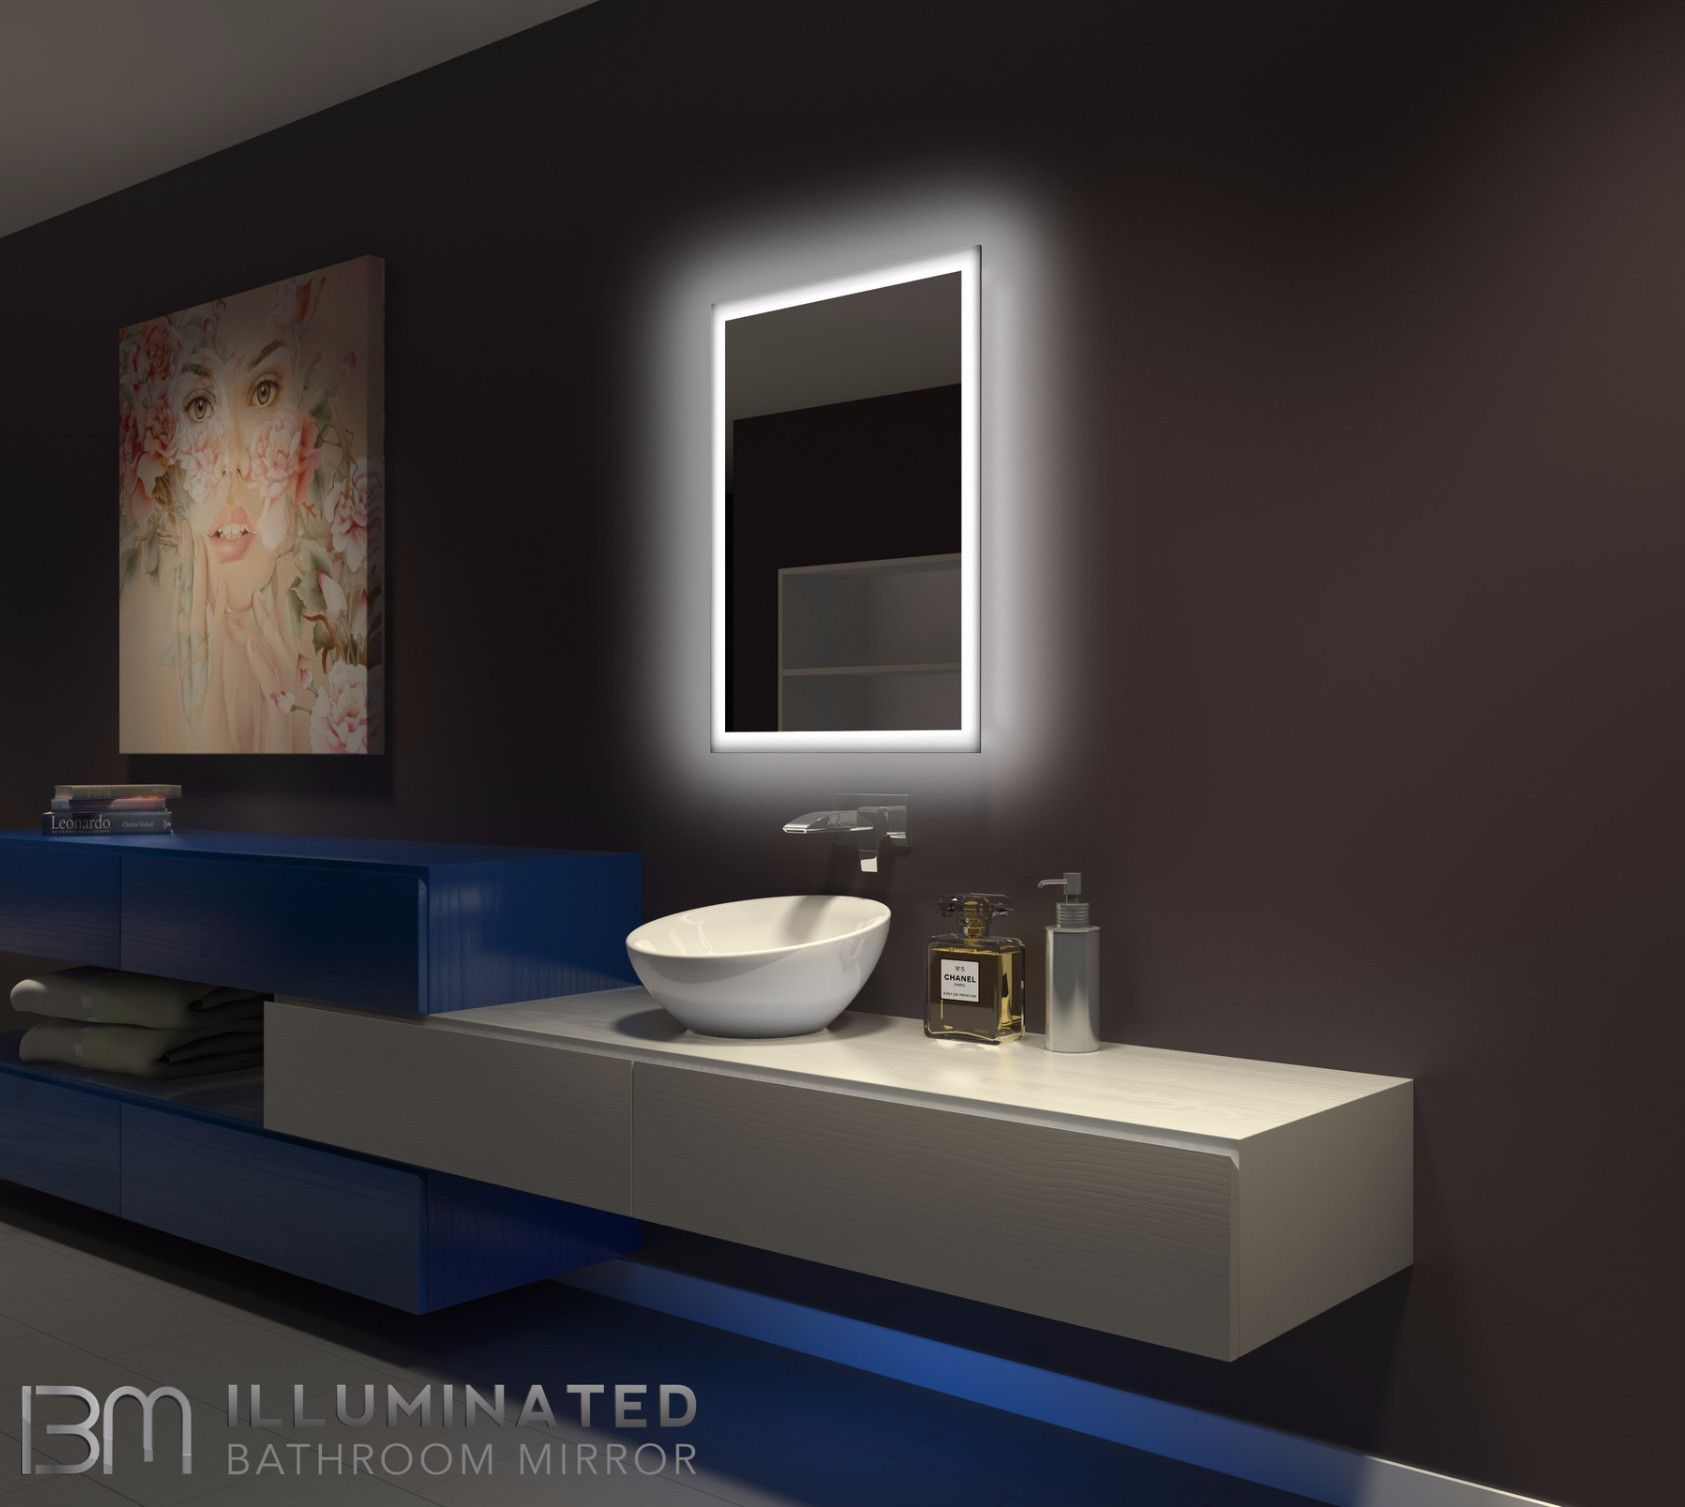 Type Backlit Mirror Shape Rectangle Size 24 X 32x 2 Description Dimmable On A Wall Switch 42 Backlit Mirror Mirror Wall Bathroom Backlit Bathroom Mirror